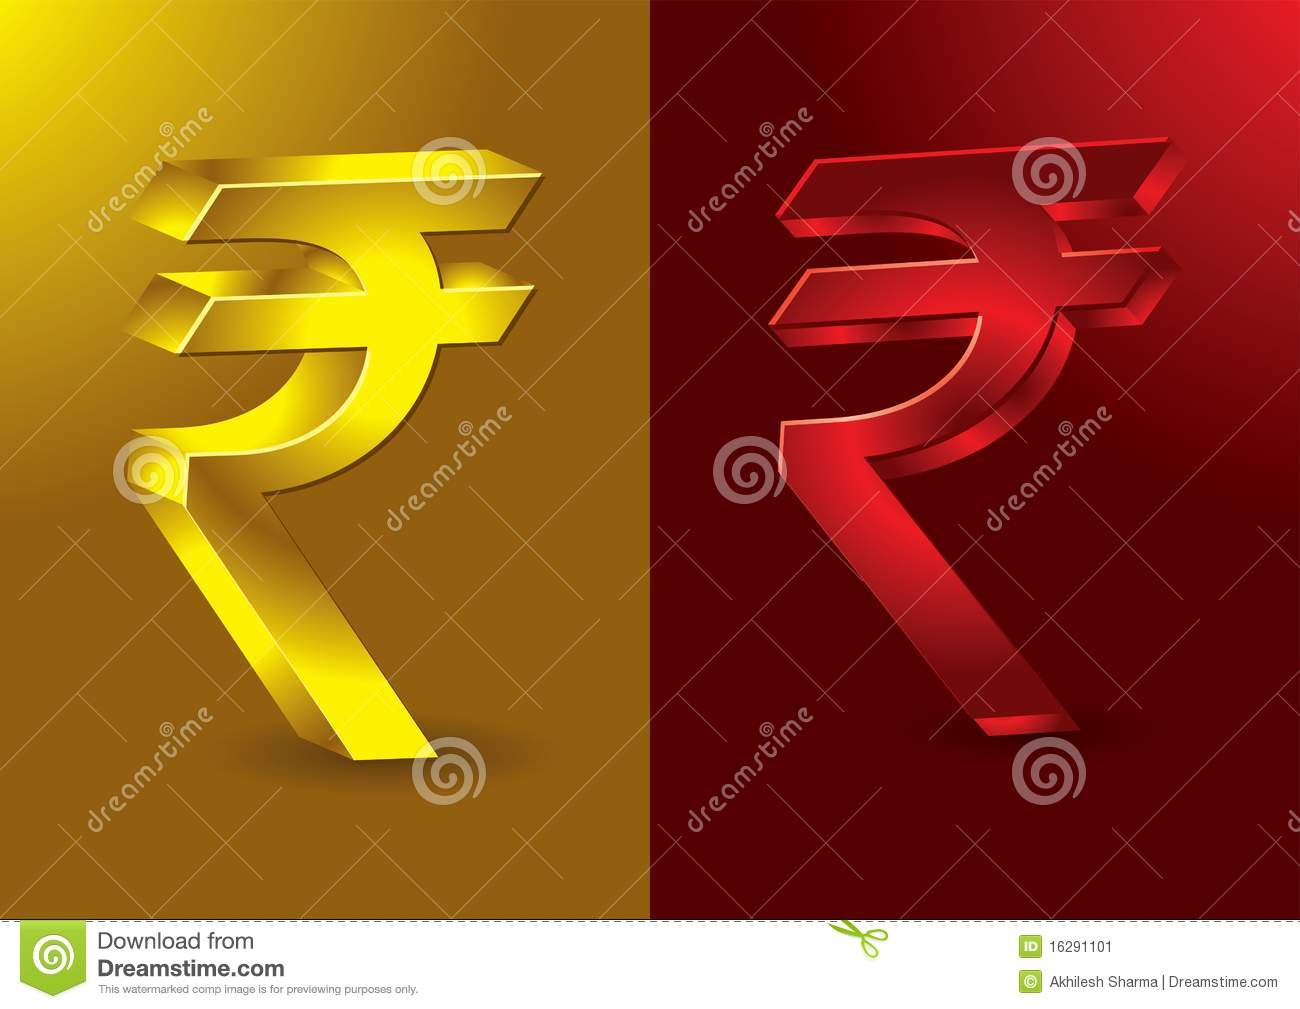 Newly formed indian rupees symbol stock vector illustration of newly formed indian rupees symbol biocorpaavc Choice Image